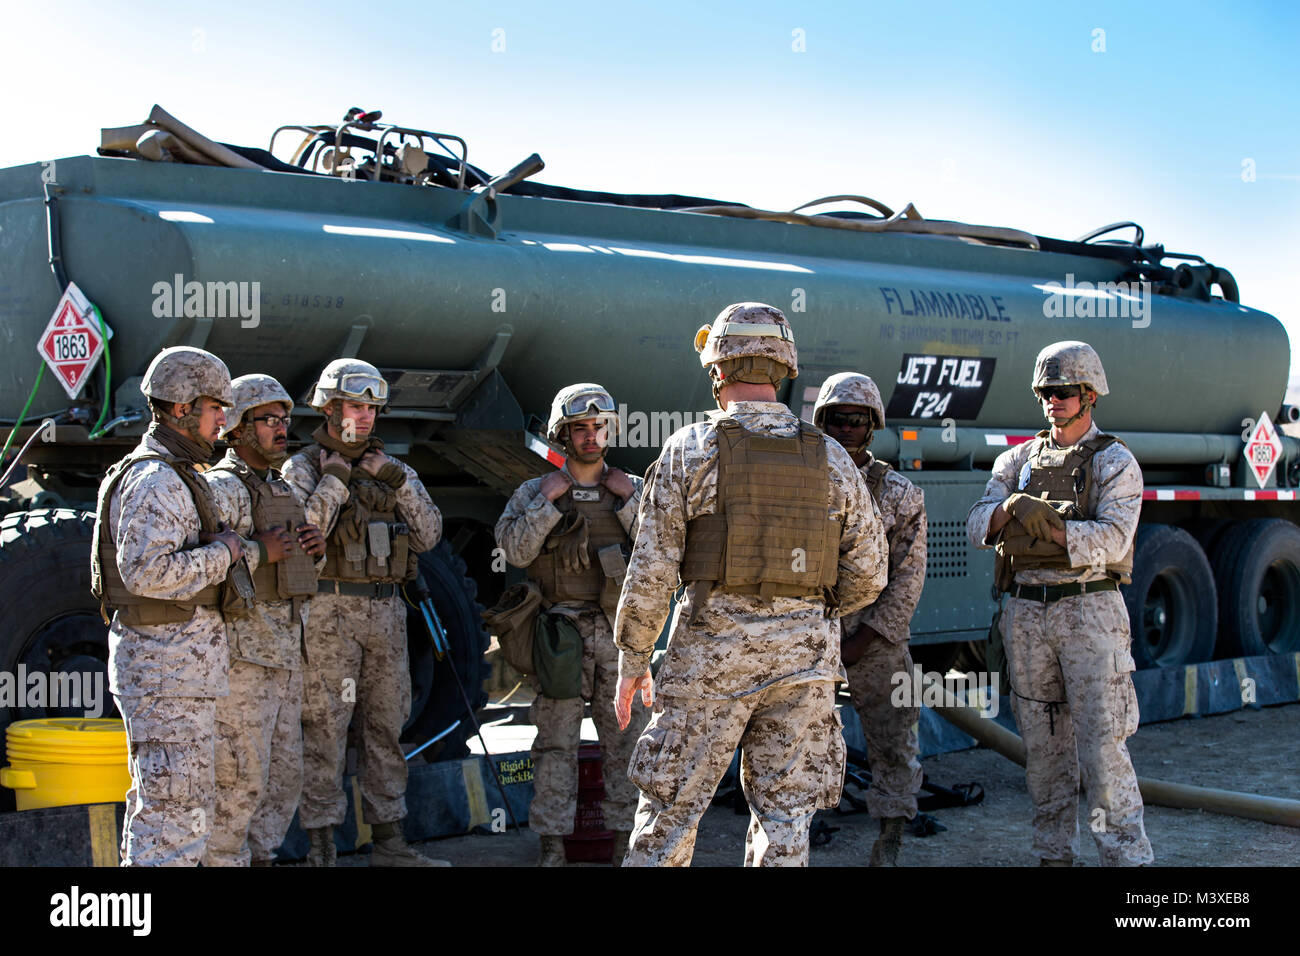 Marines with Marine Wing Support Squadron 371 plan for next refueling at the Forward Arming and Refueling Point Stock Photo